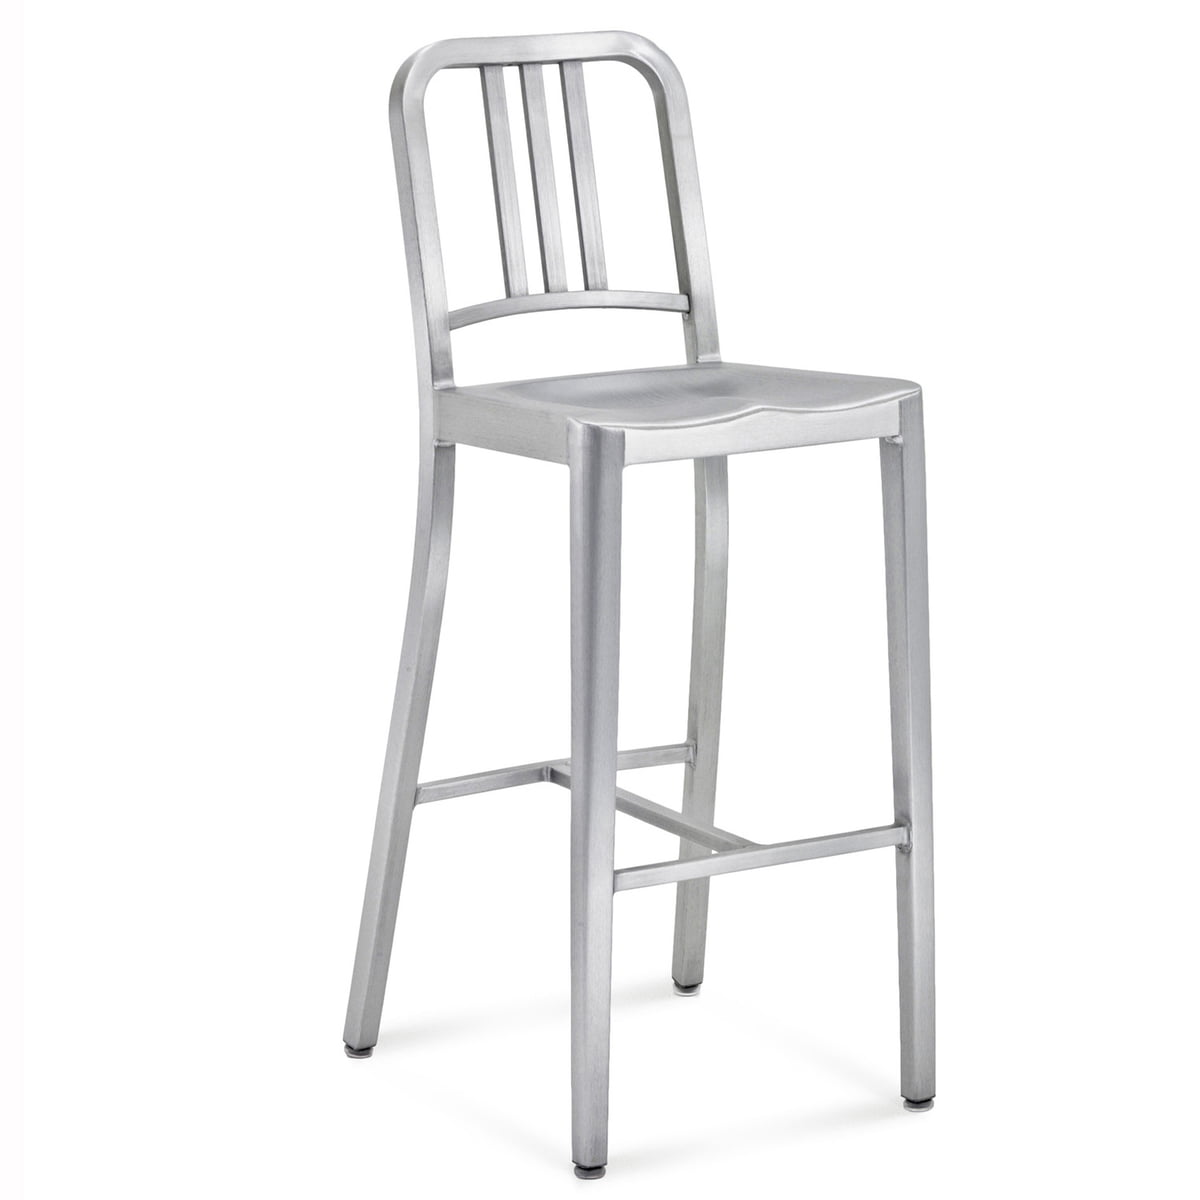 navy bar stool  emeco  shop - emeco  navy bar stool